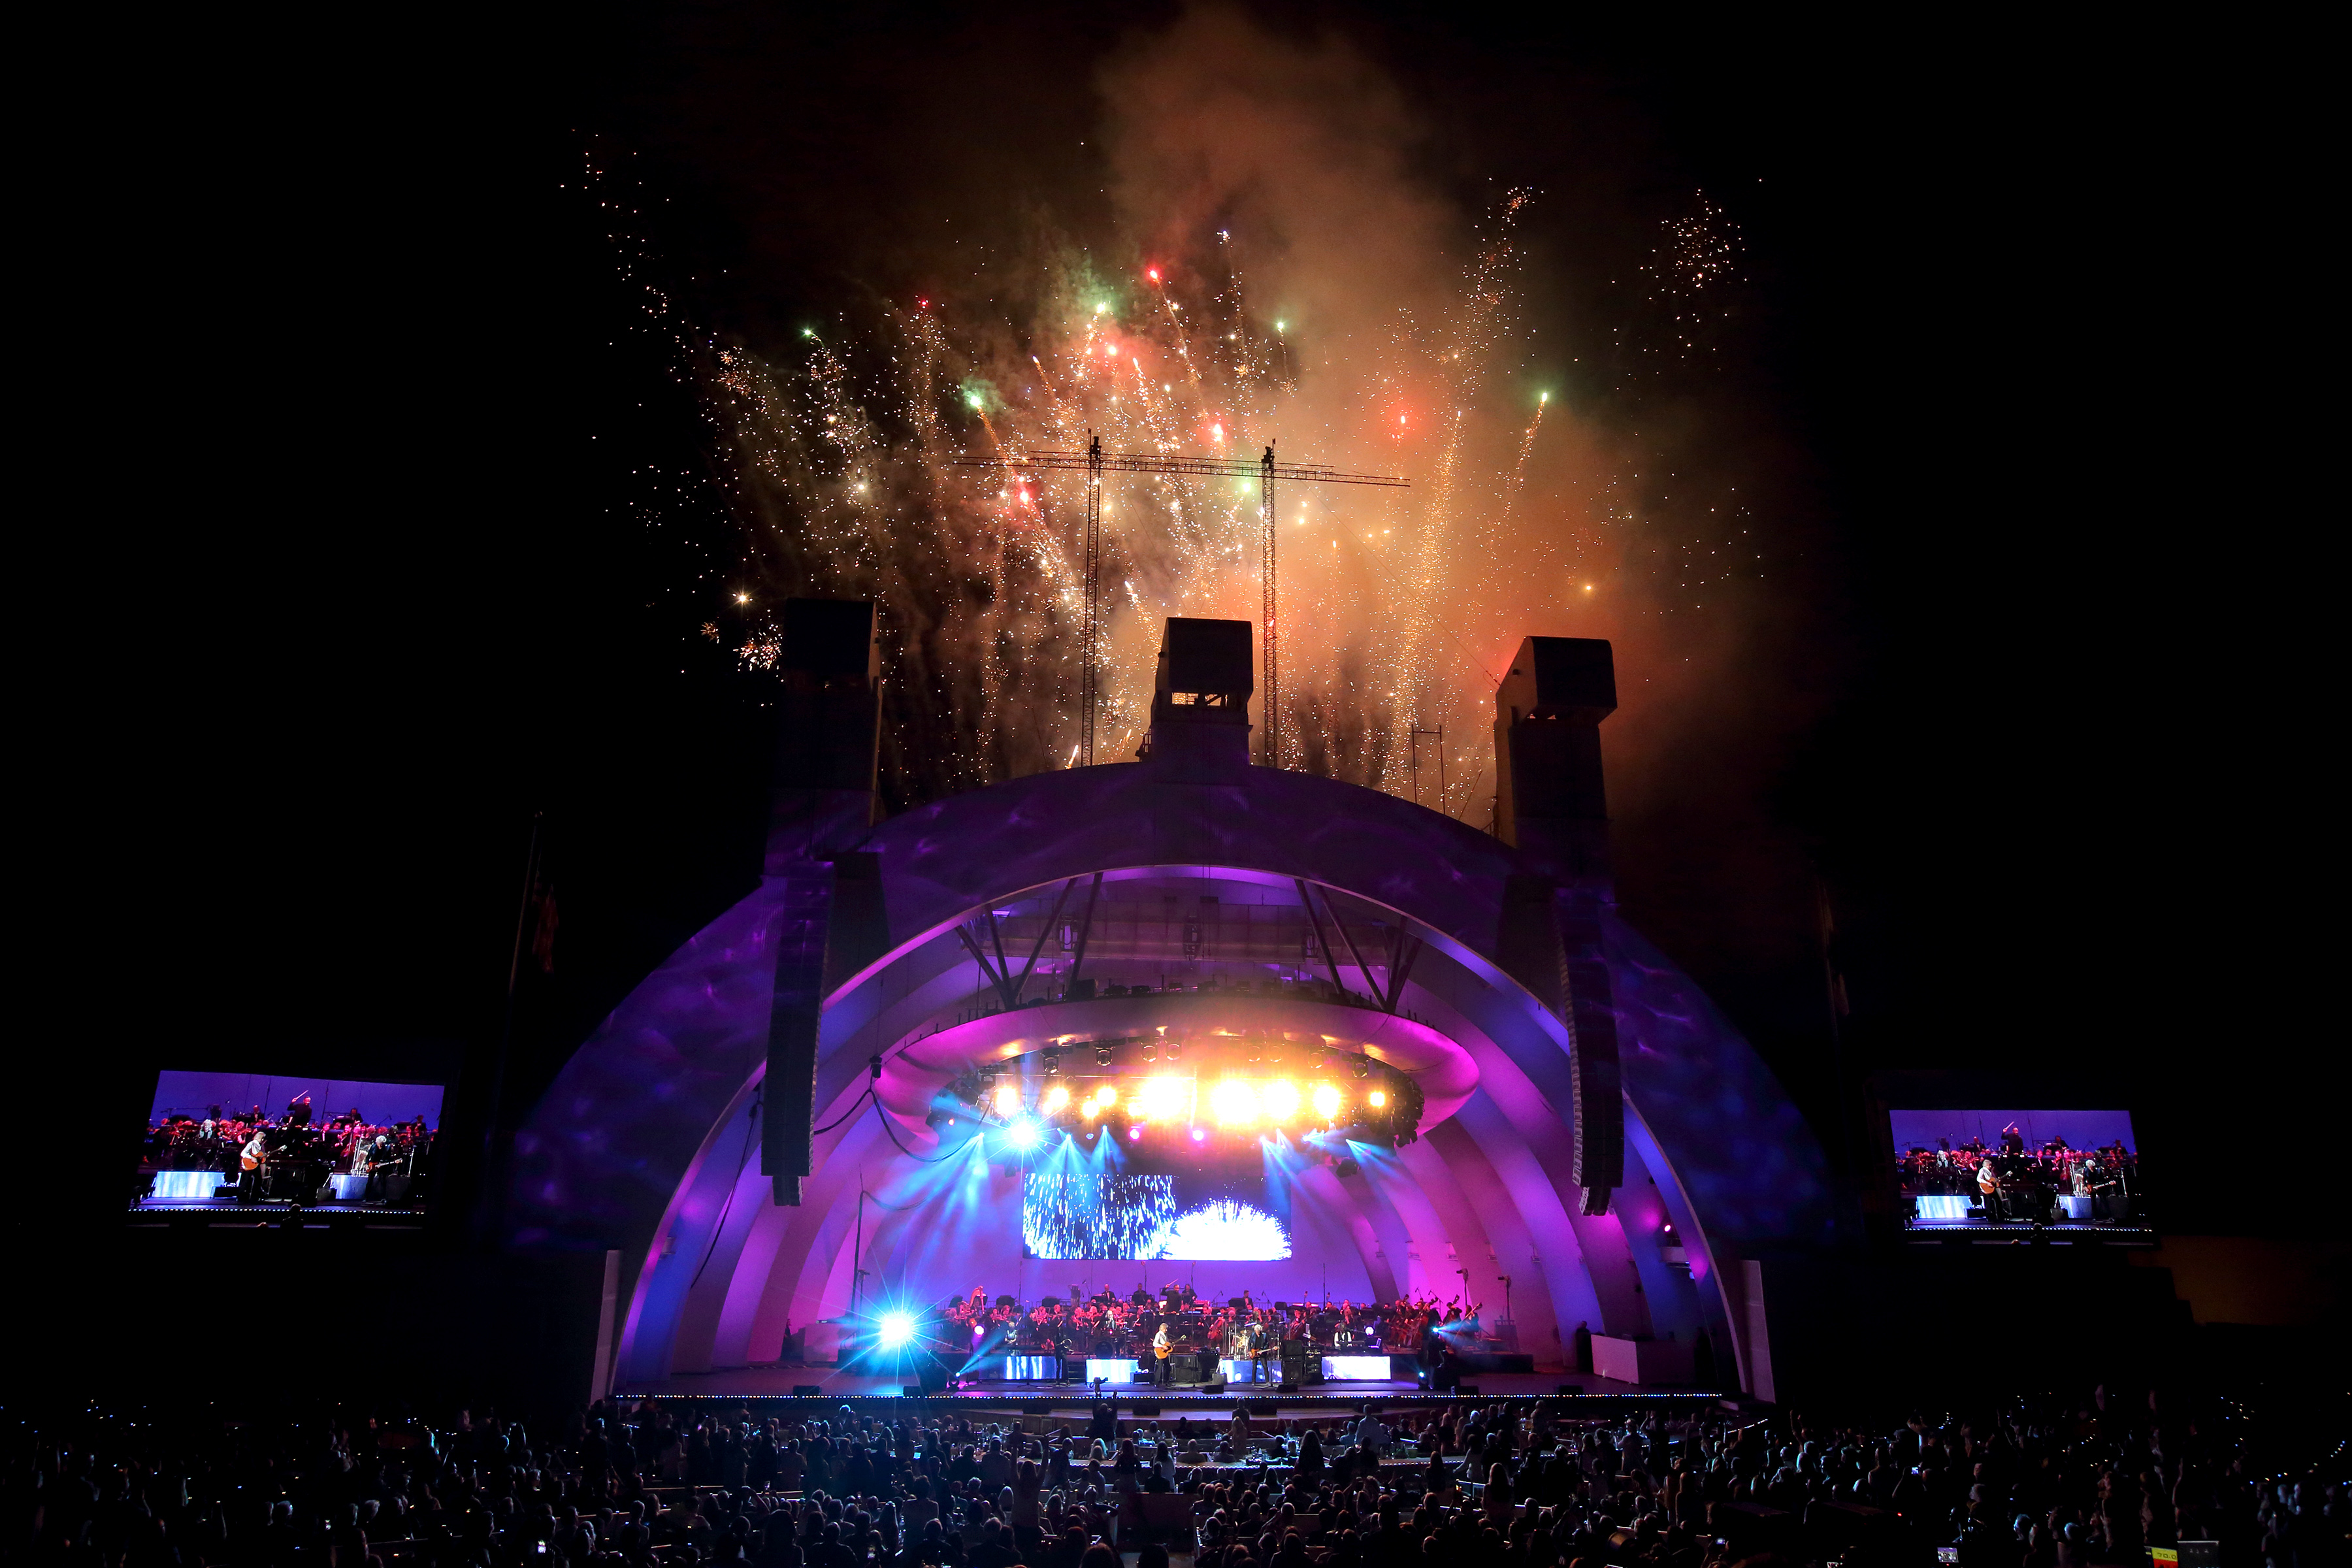 Hollywood Bowl - Opening Night 2017